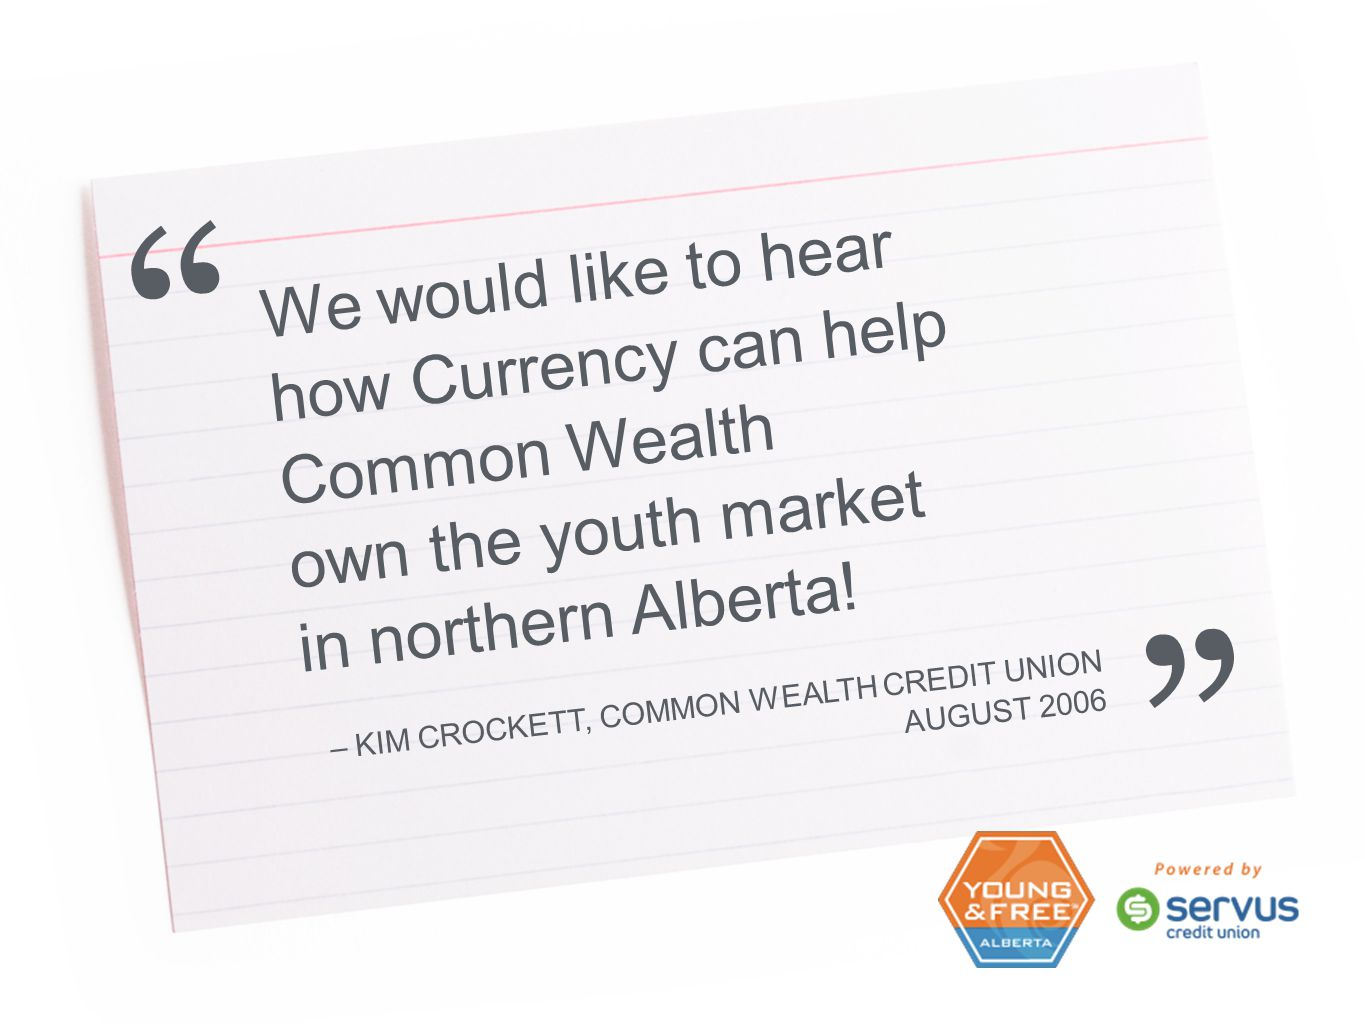 We would like to hear how Currency can help Common Wealth own the youth market in northern Alberta! – KIM CROCKETT, COMMON WEALTH CREDIT UNION AUGUST